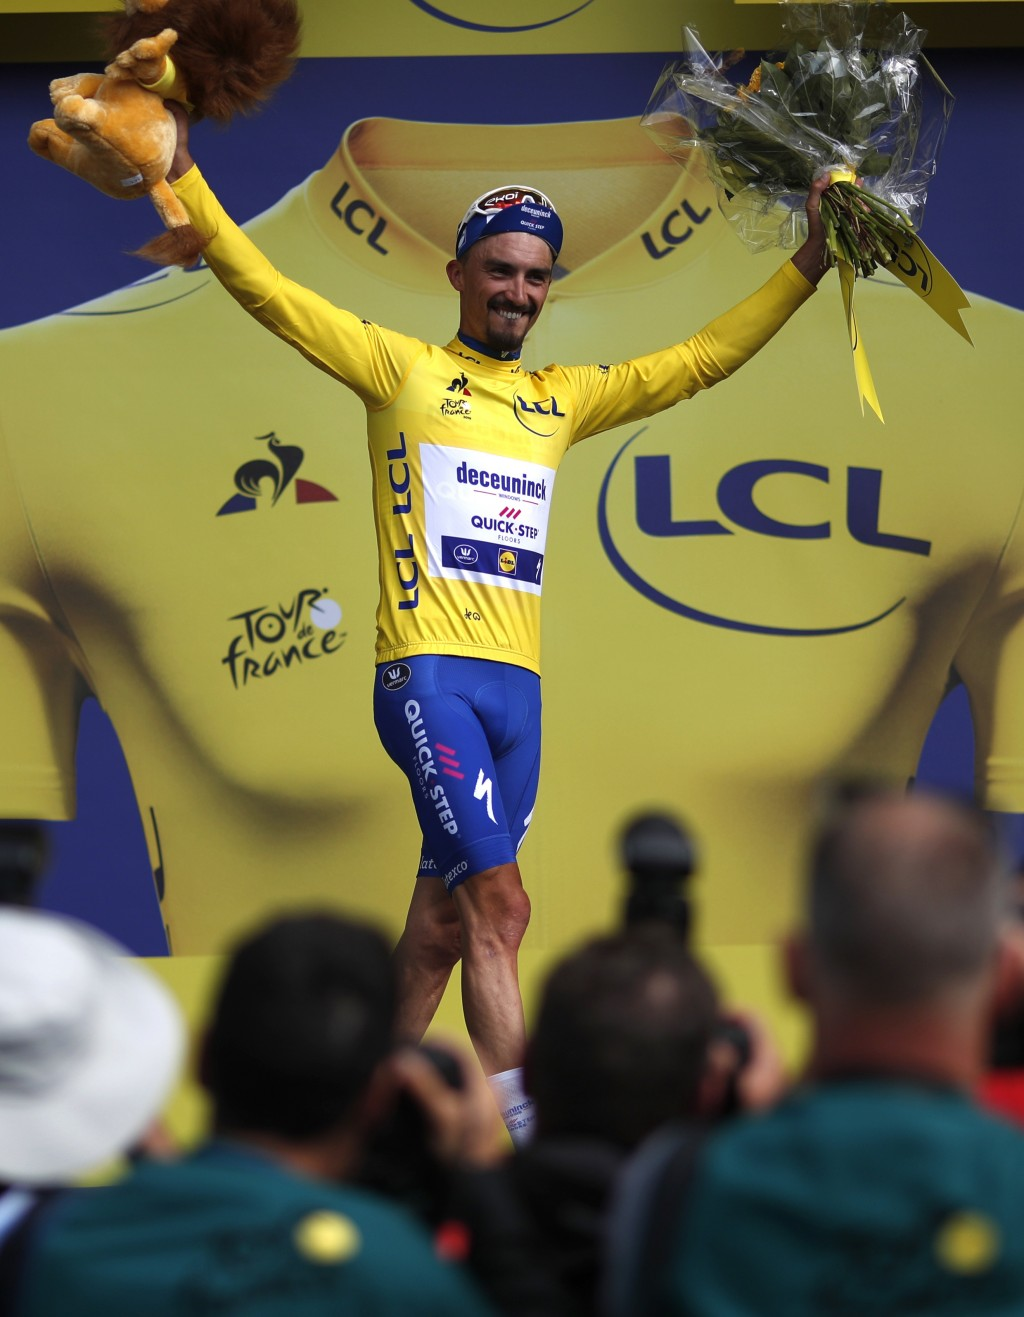 Sagan sprints to win as Alaphilippe remains in yellow